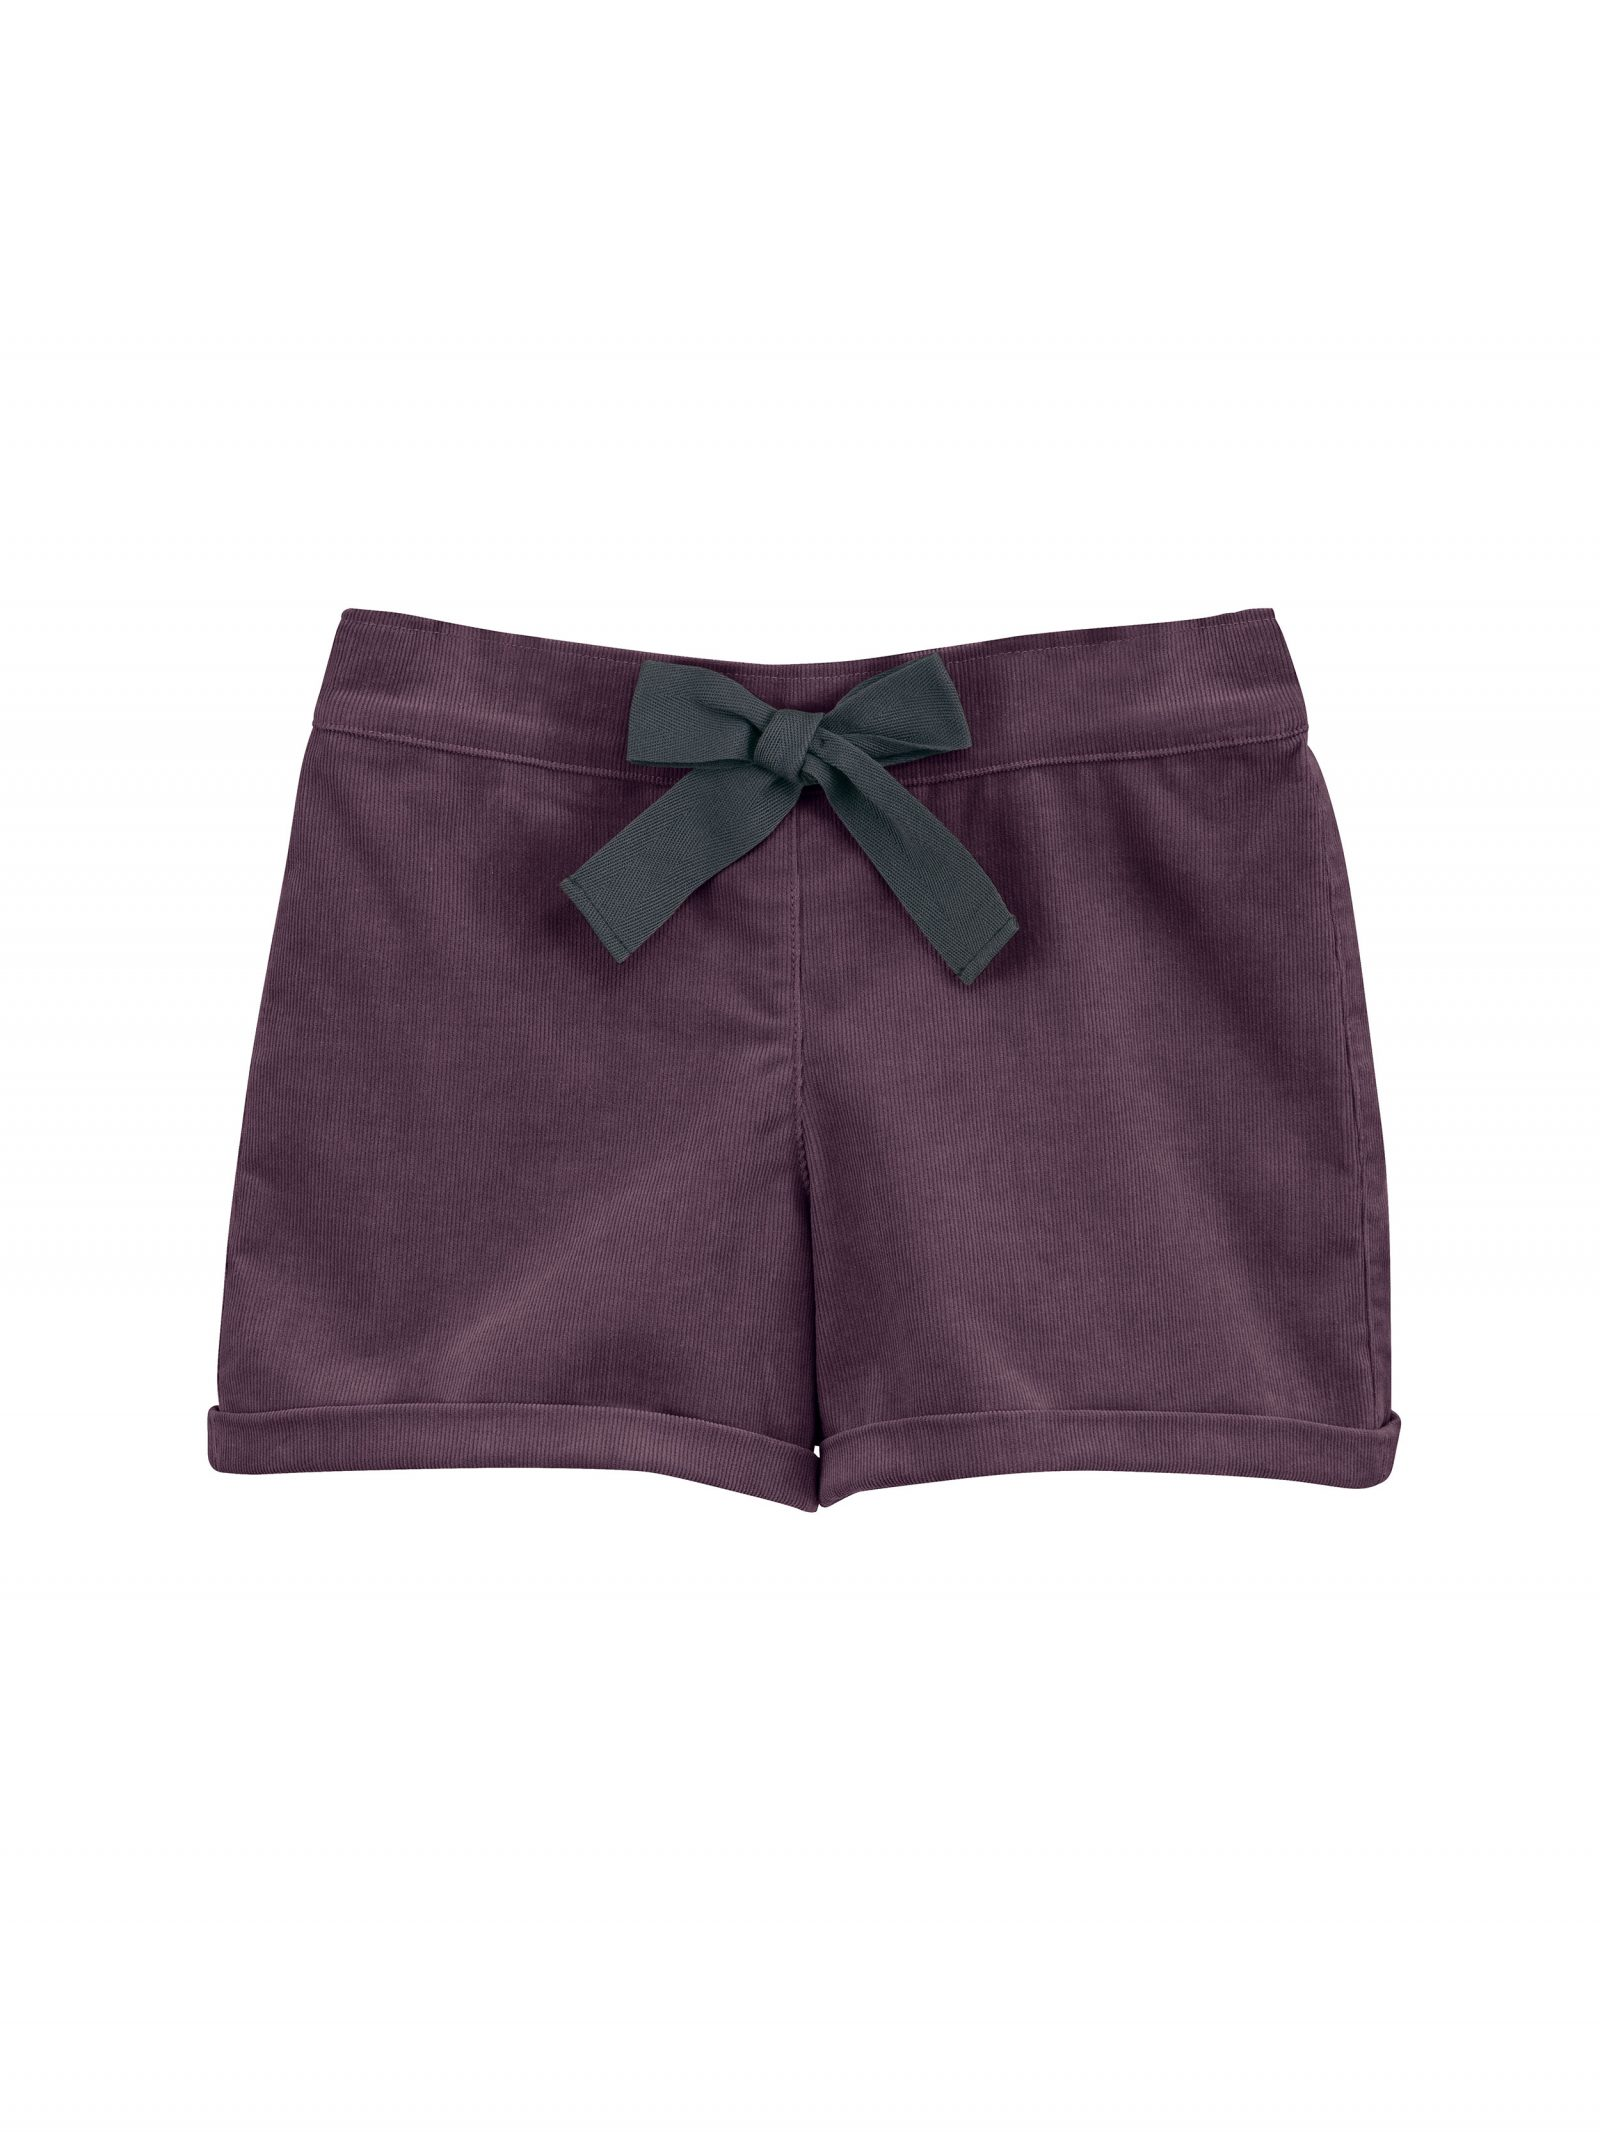 Shorts in Burgundy - Front